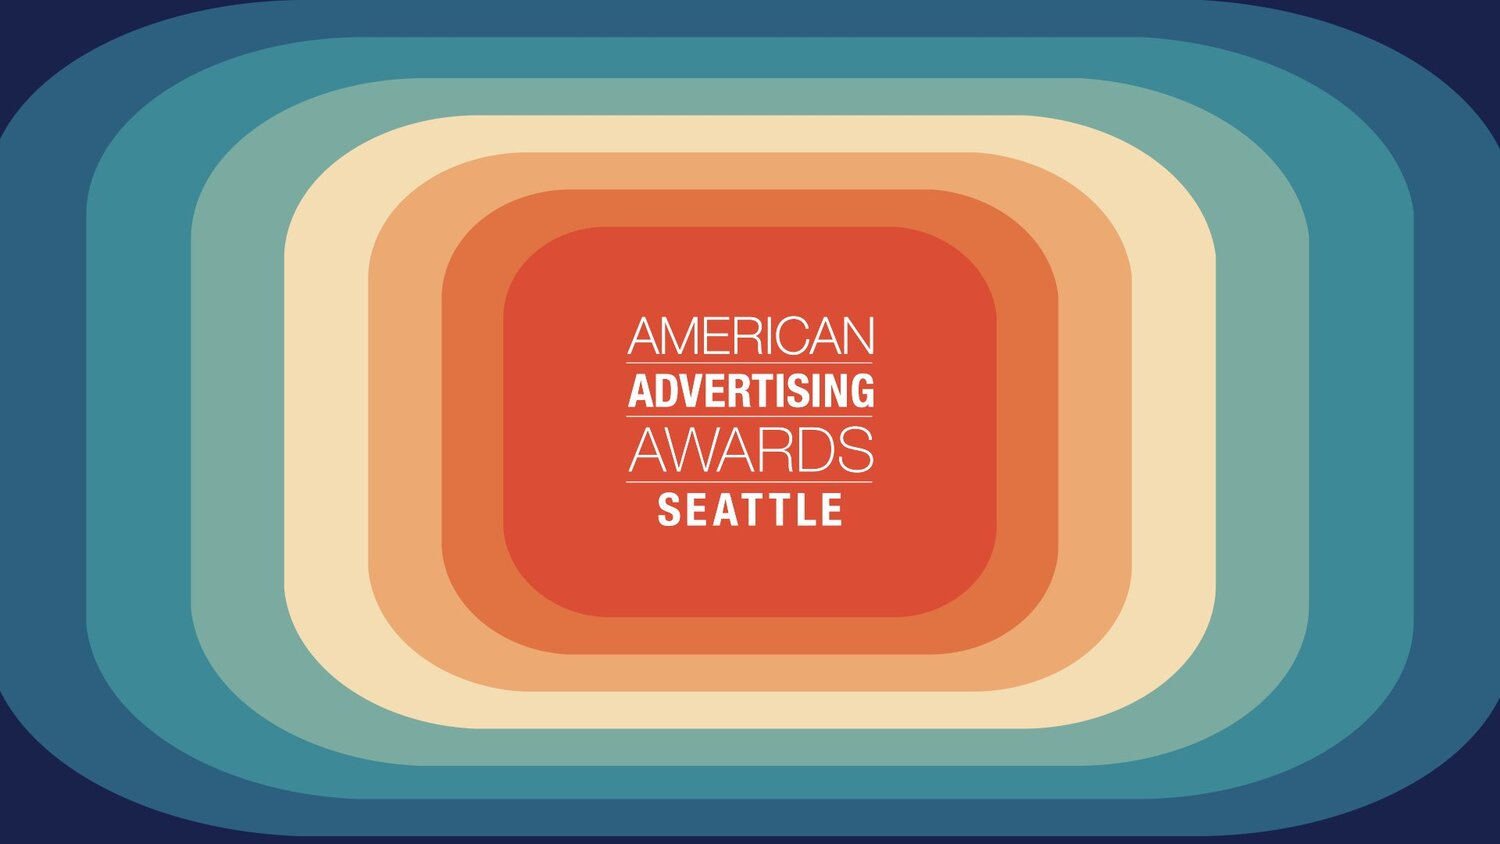 The 2021 American Advertising Awards Seattle   Events Calendar